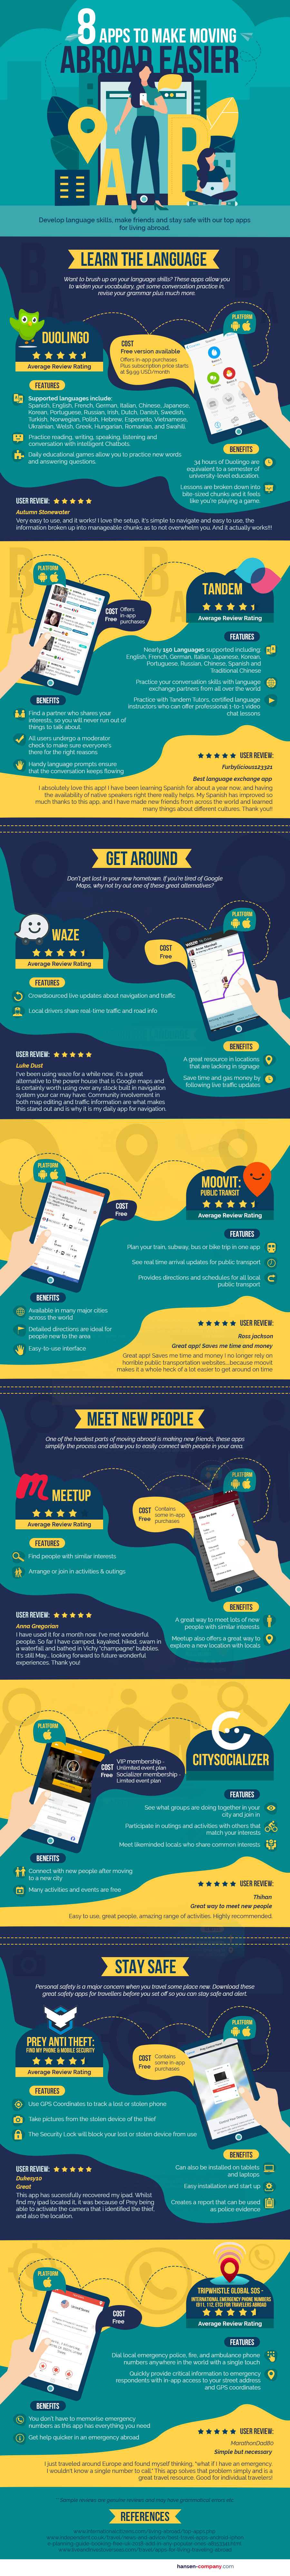 Immigrant Report - hansen infographic - 8-apps-to-make-moving-abroad-easier.jpg